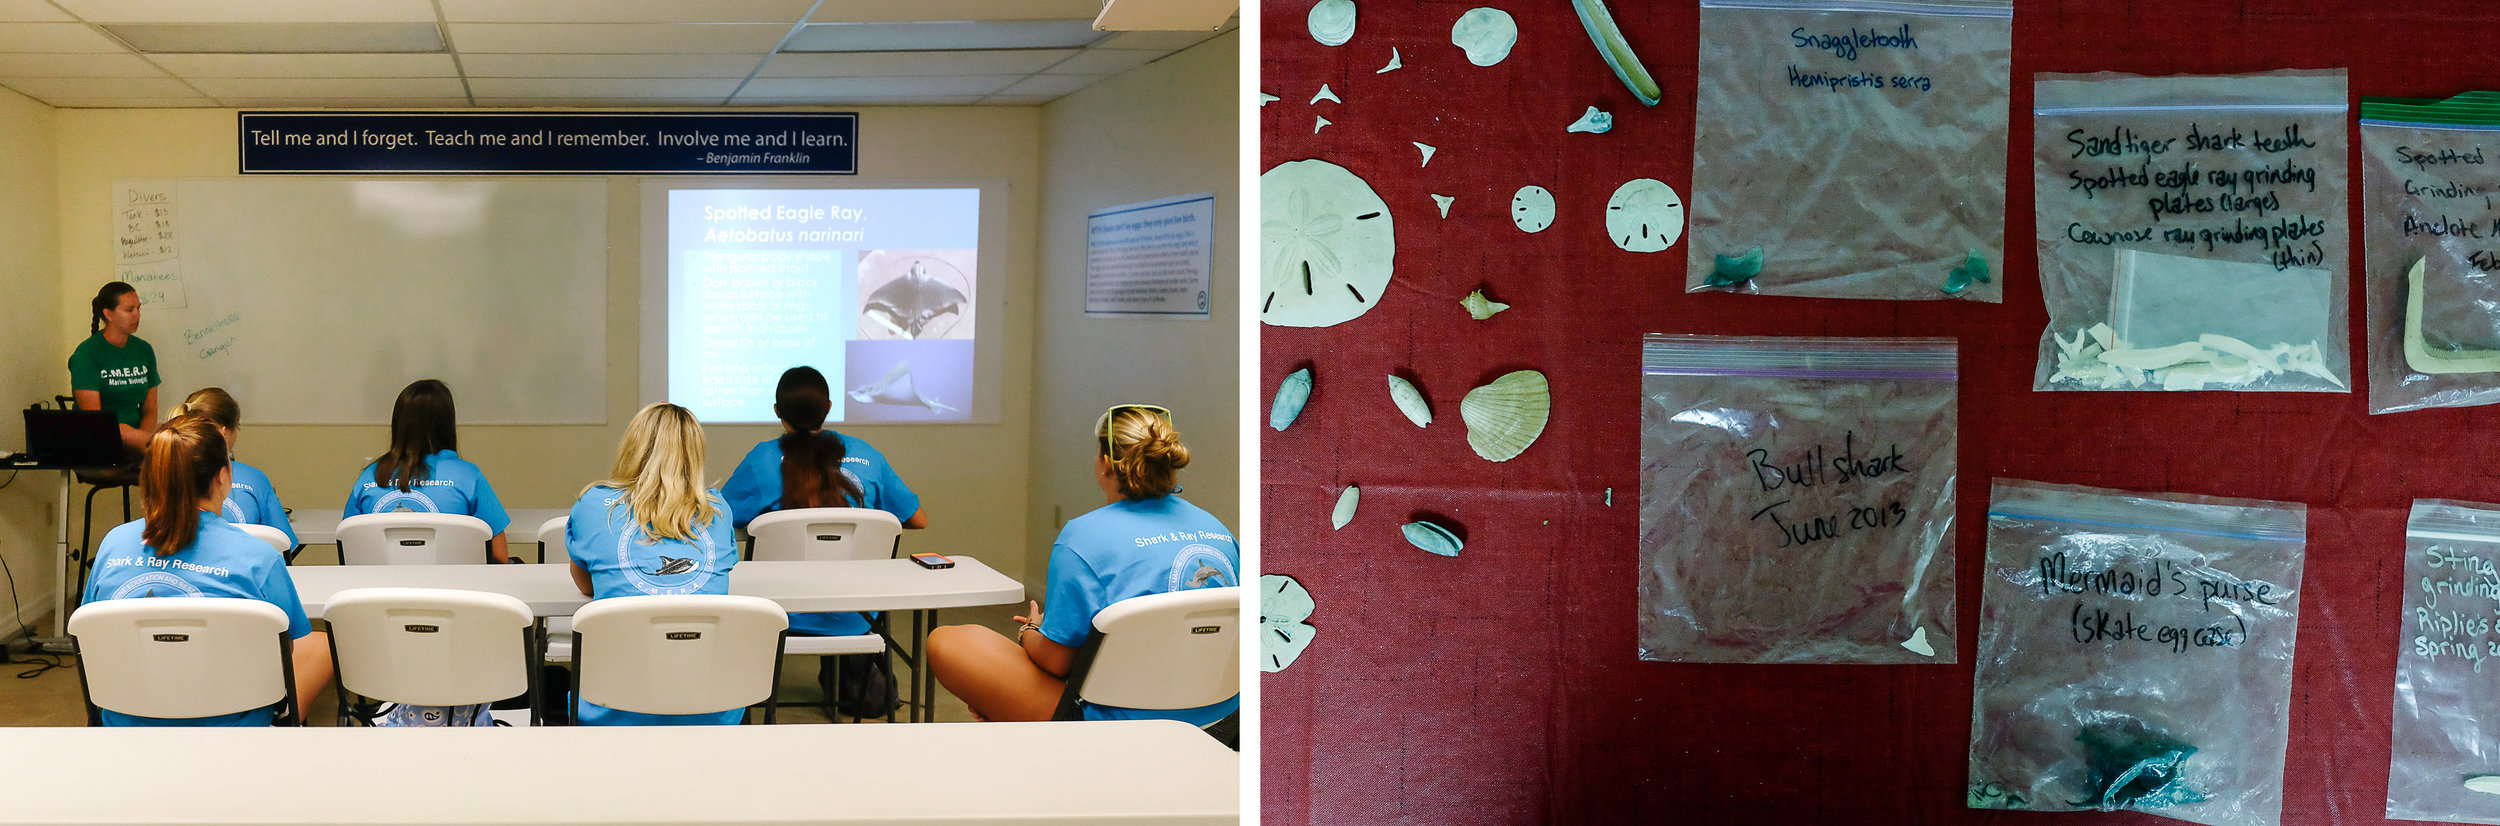 Days at Coastal Marine Education and Research Academy (CMERA) start in the classroom with lectures, group discussions, and slide shows.